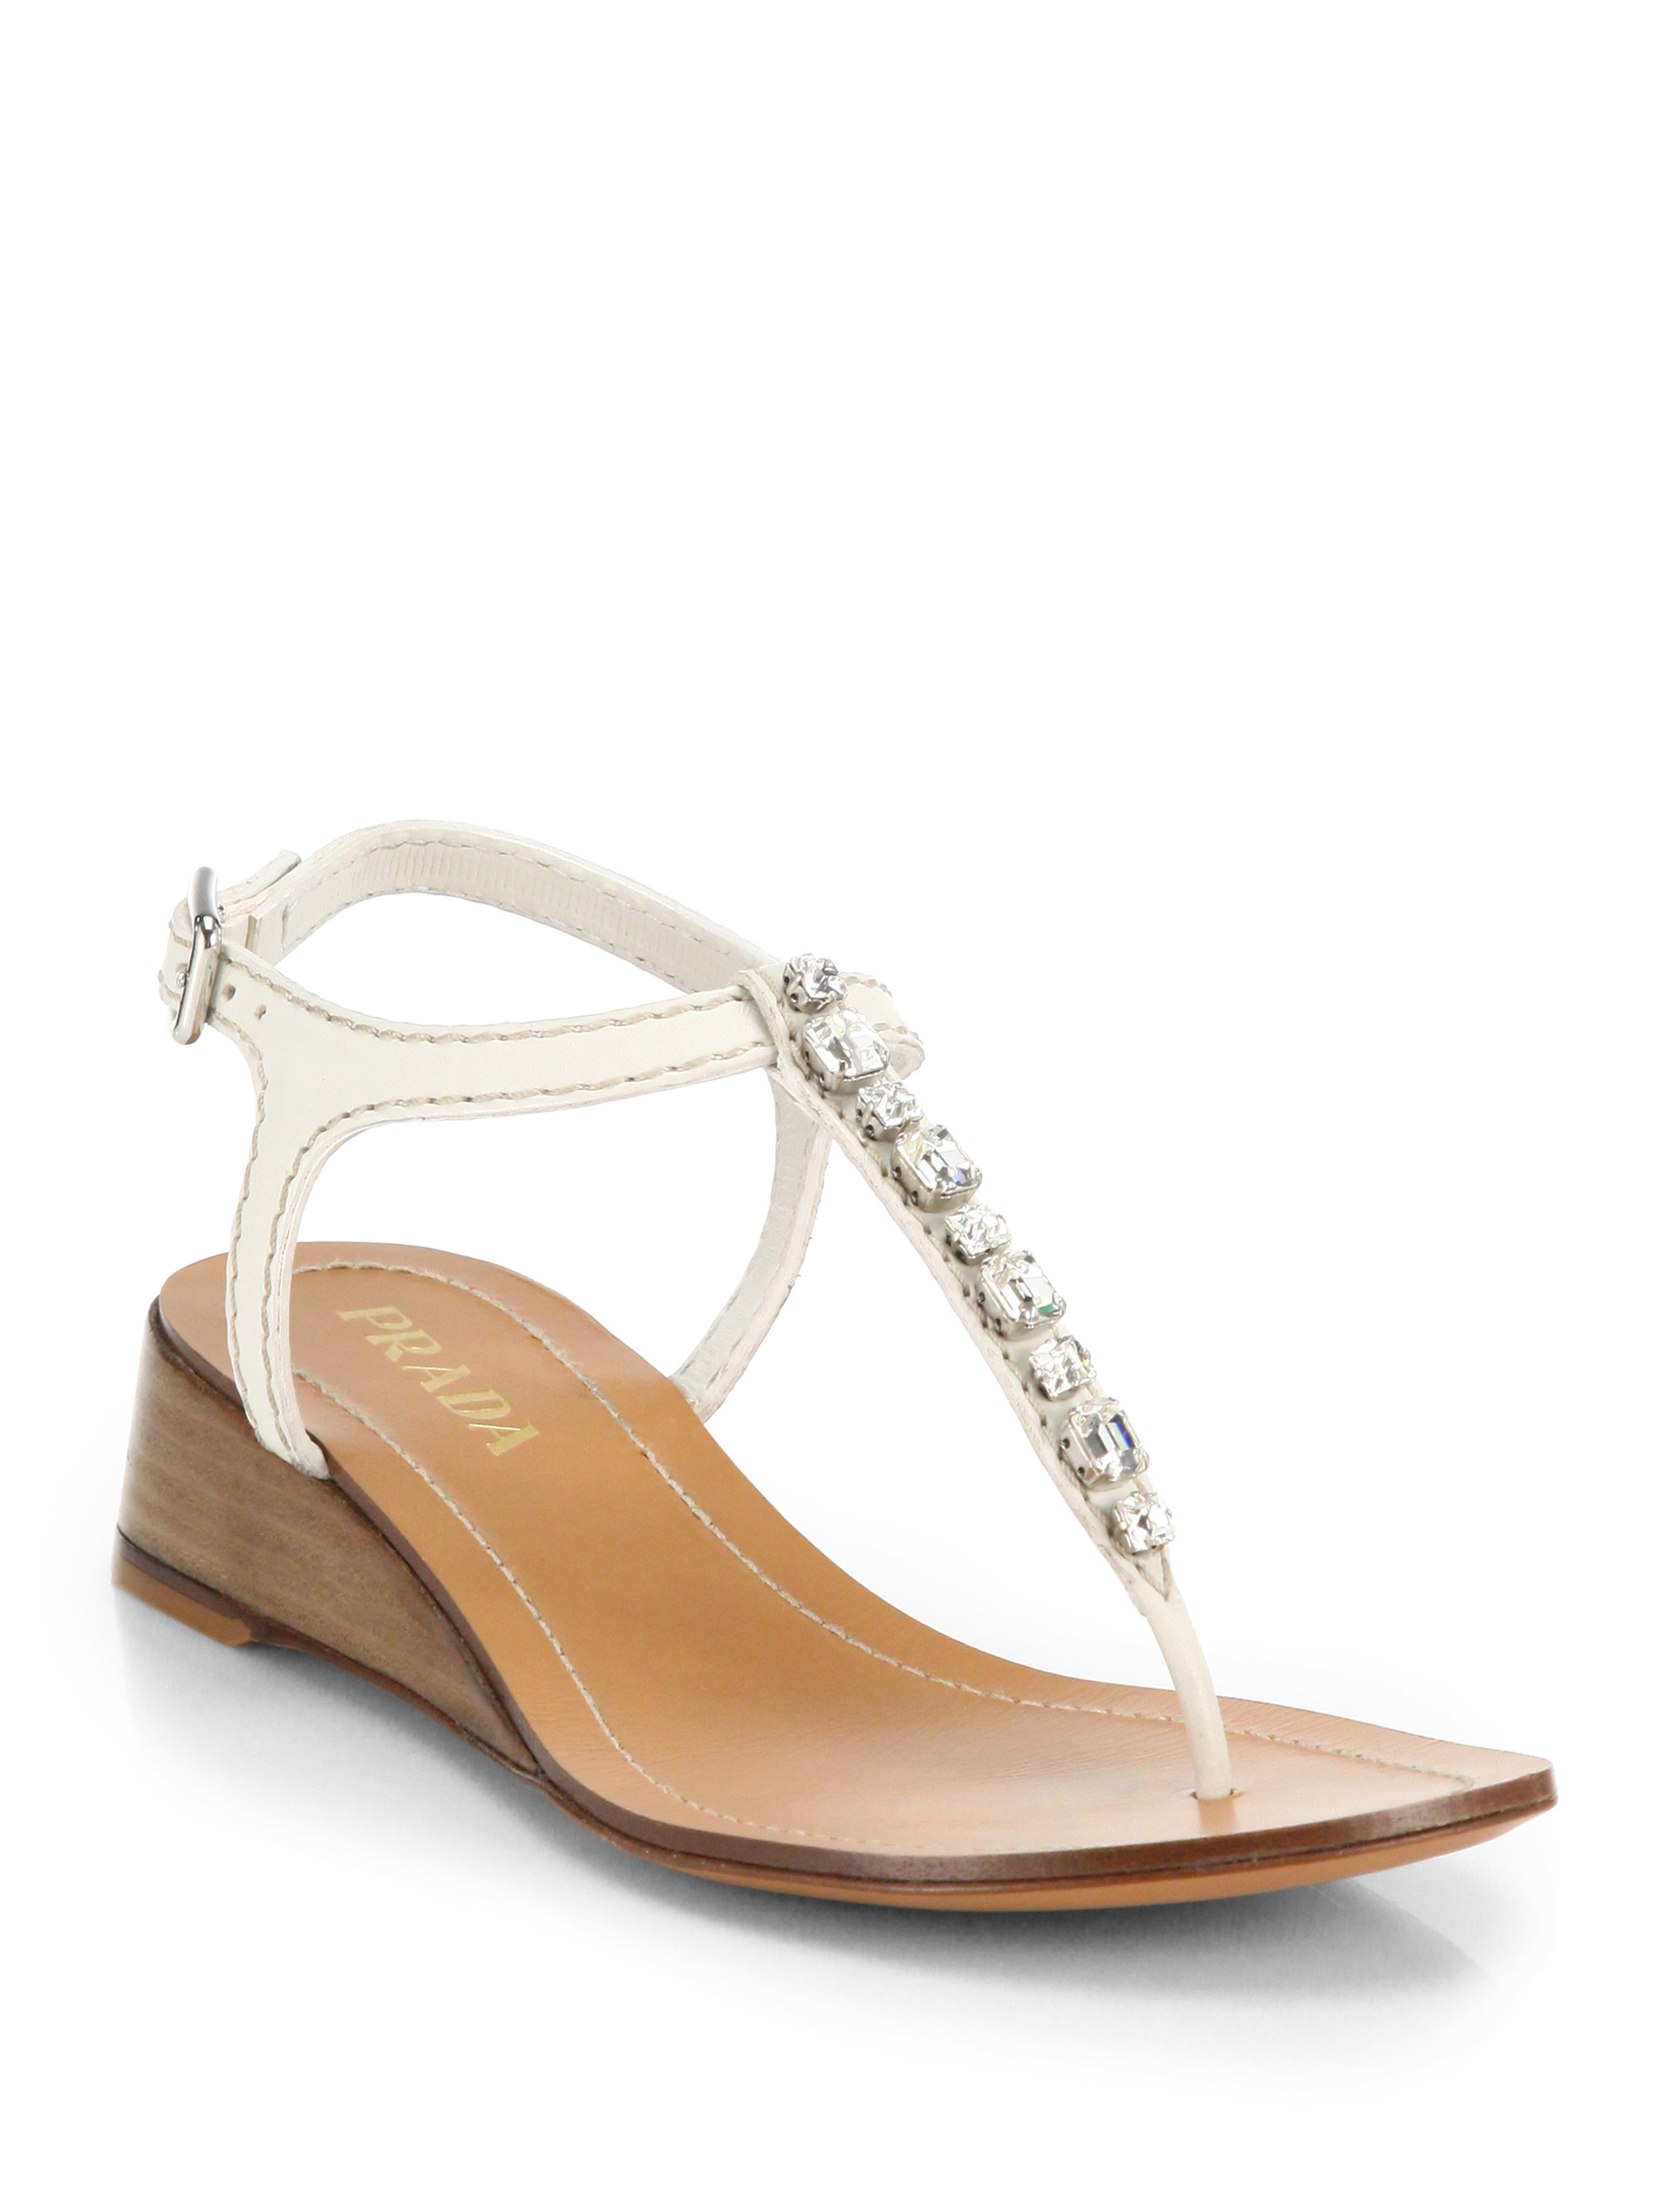 a439ad47b Lyst - Prada Swarovski Crystal Leather Wedge Thong Sandals in White